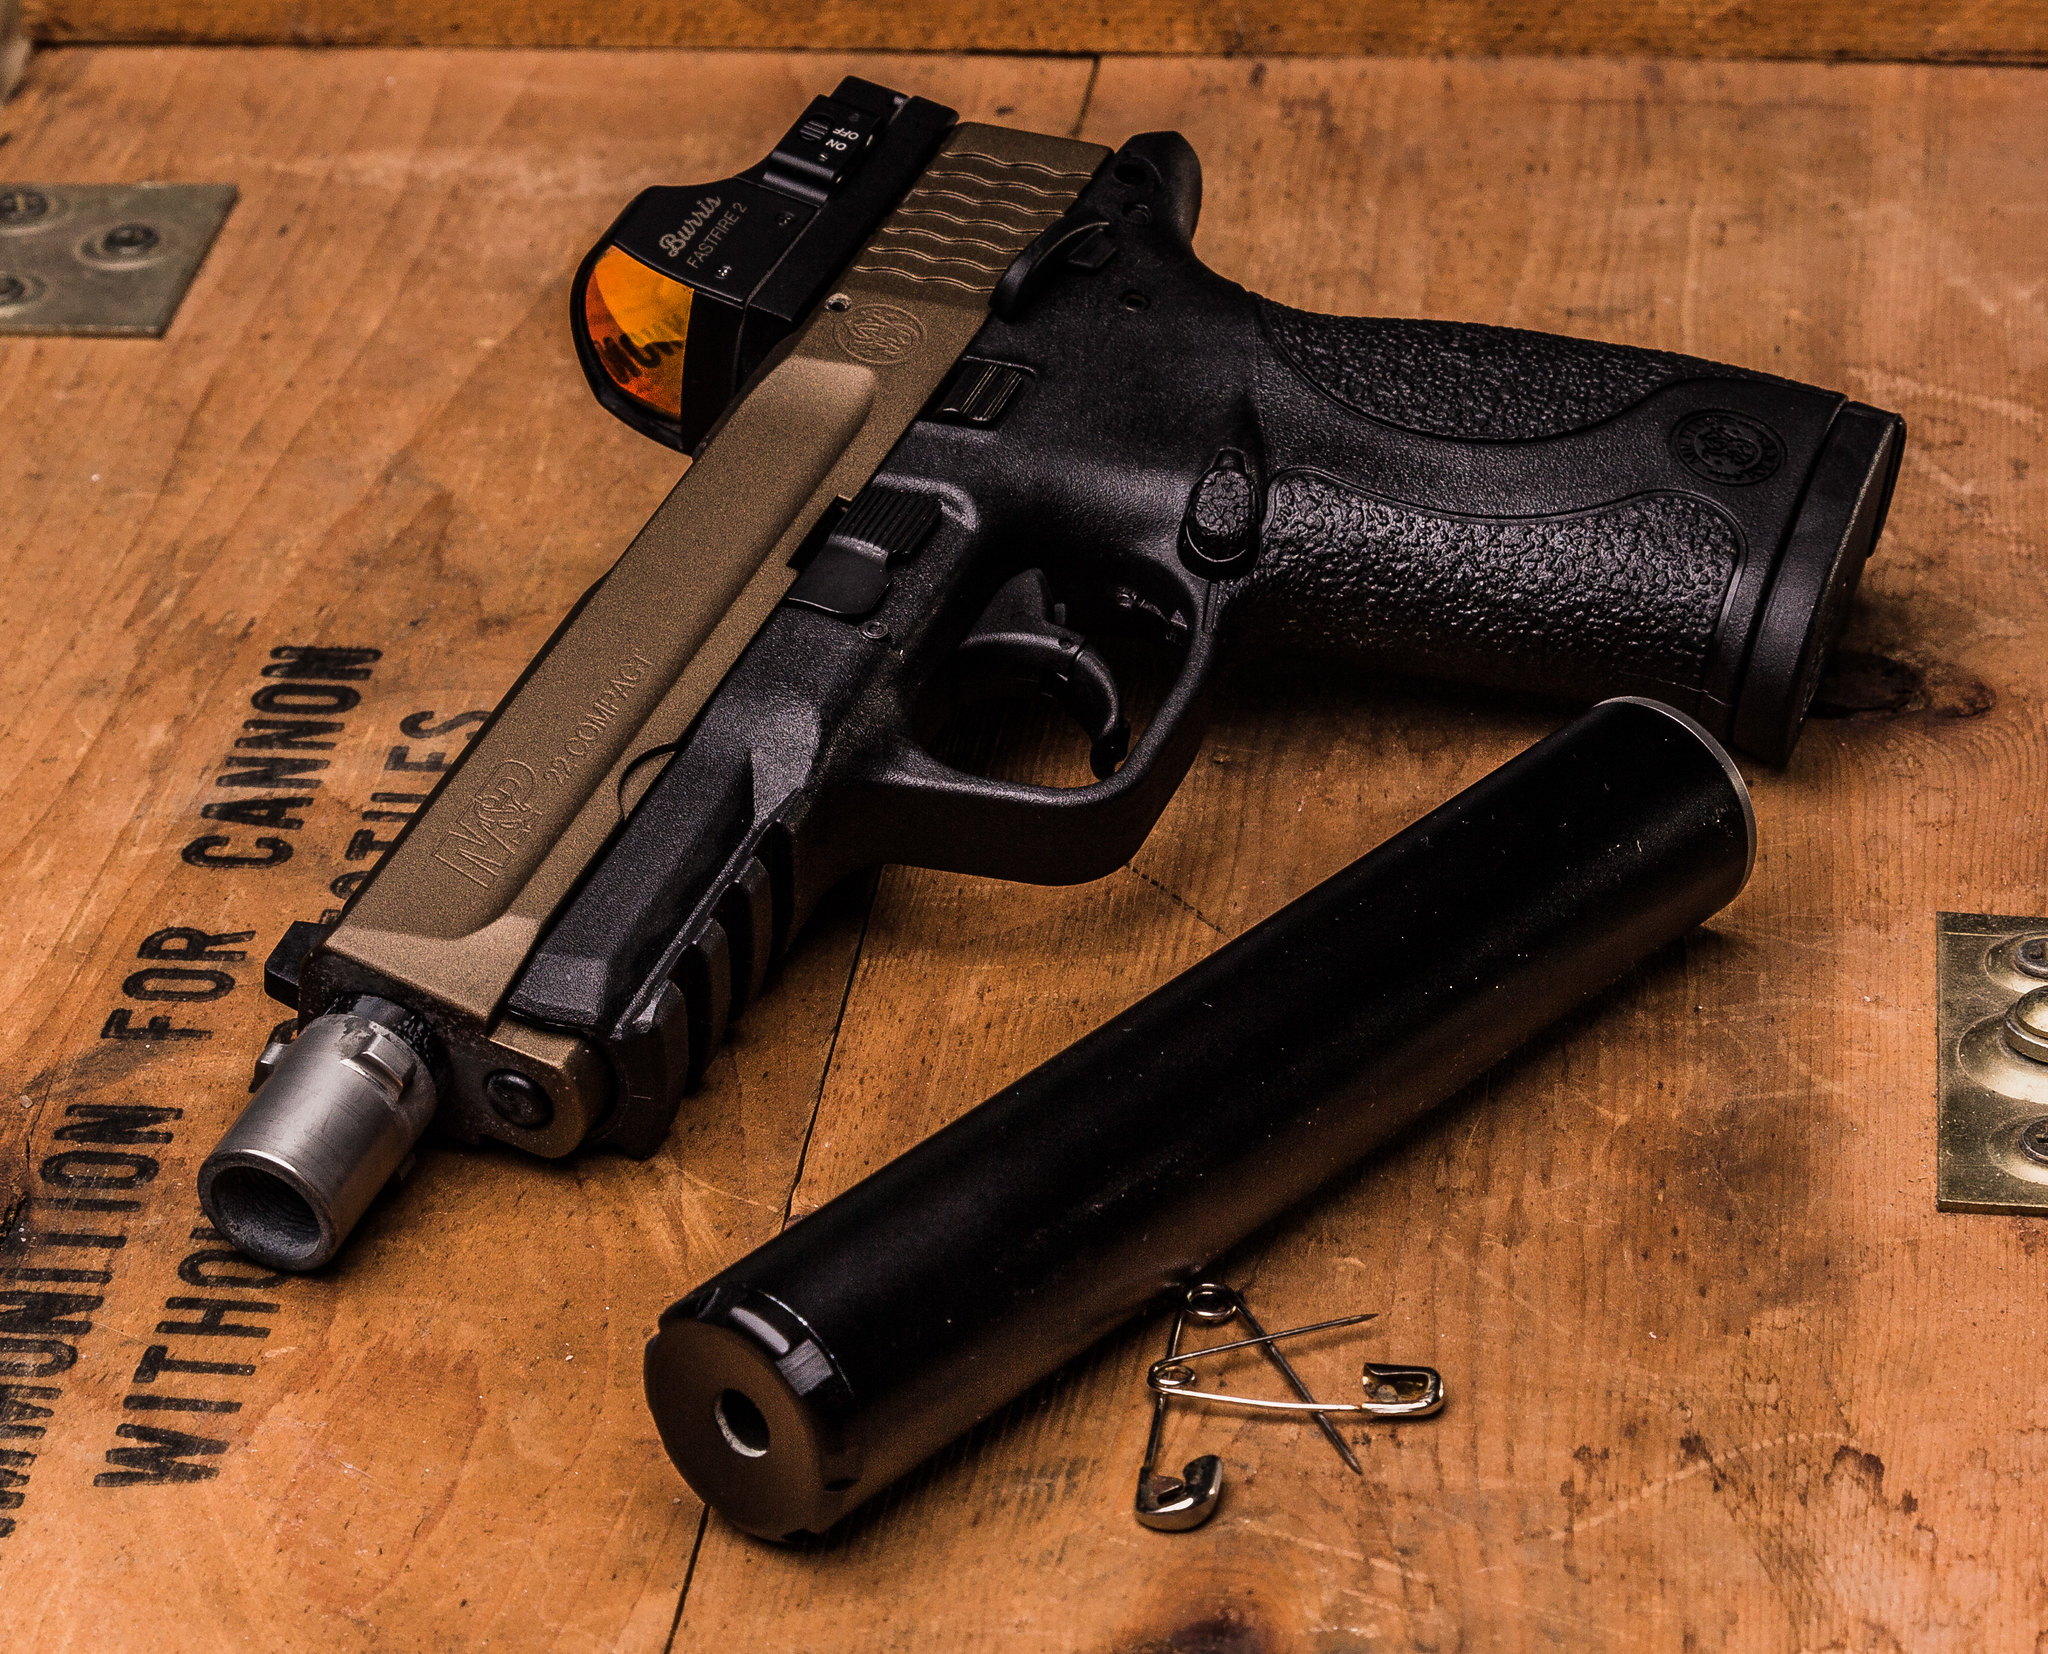 GSG Firefly--Reliability and Function Fix